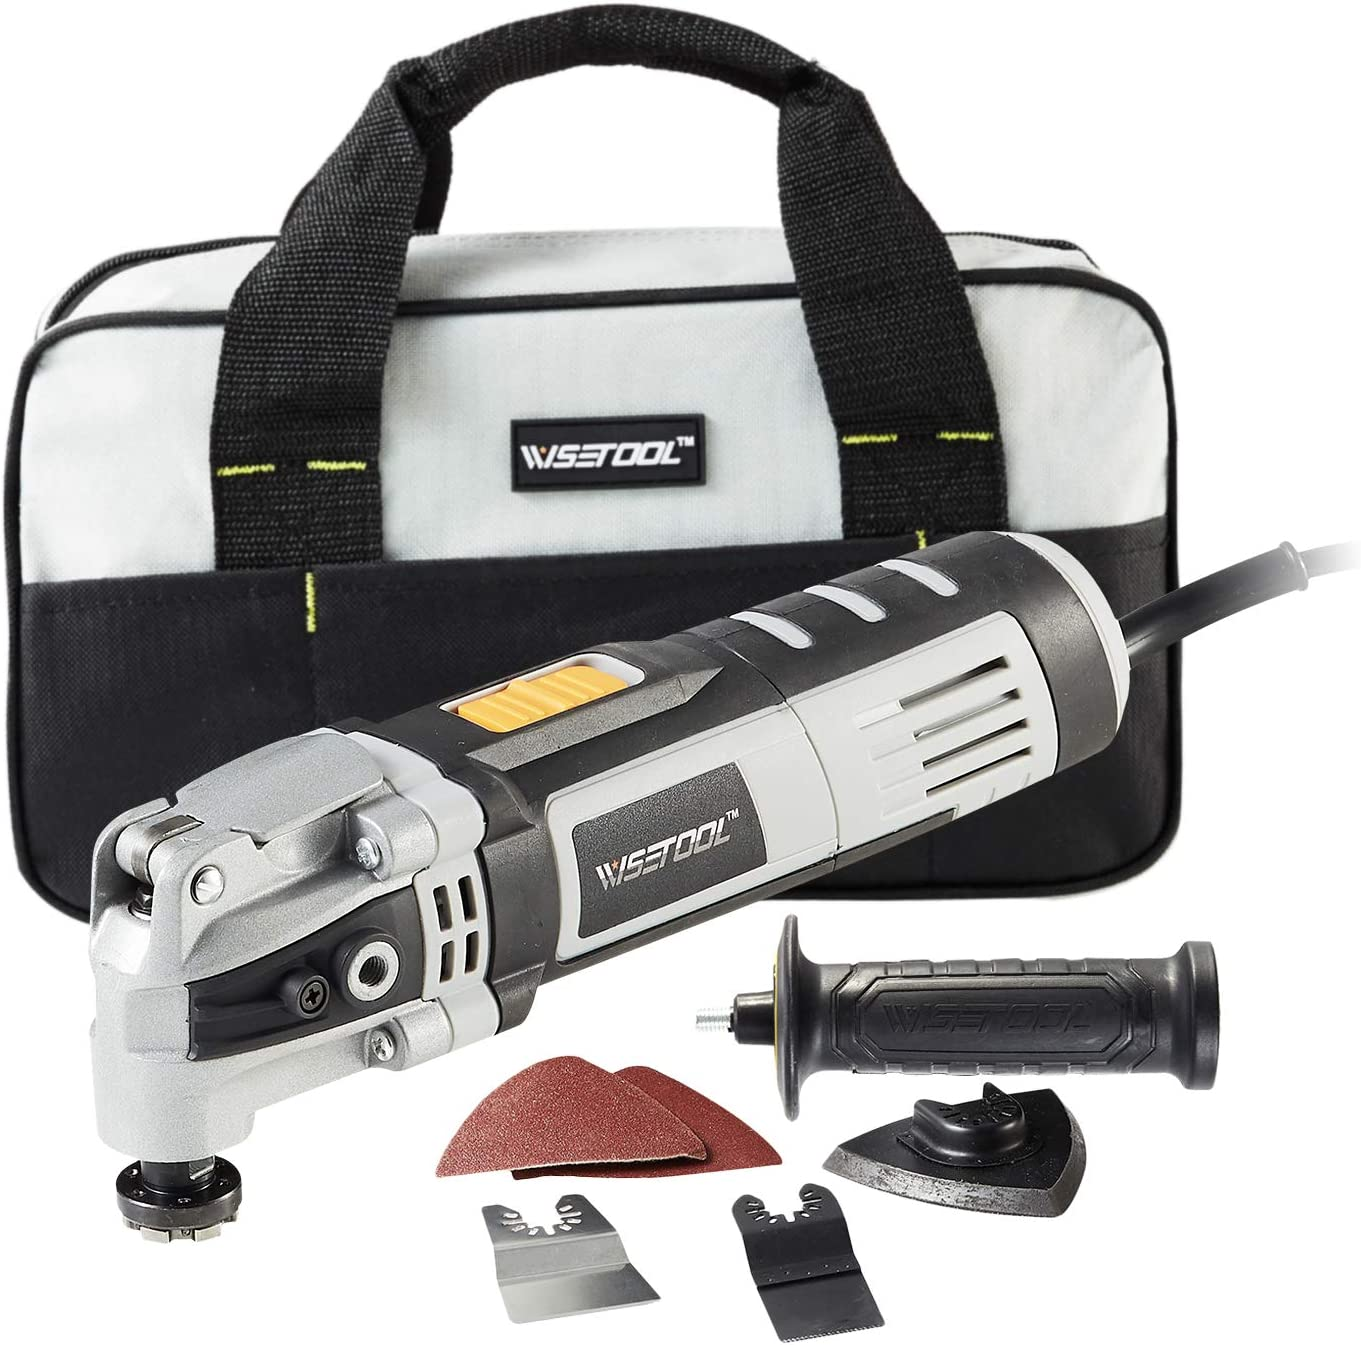 WISETOOL 400W 3.5 Amp Oscillating Multi Tool Kit with 4.5° Oscillation Angle,6 Variable Speed Oscillating Saw with Quick Blade Change System for Cutting,Sanding,Grinding